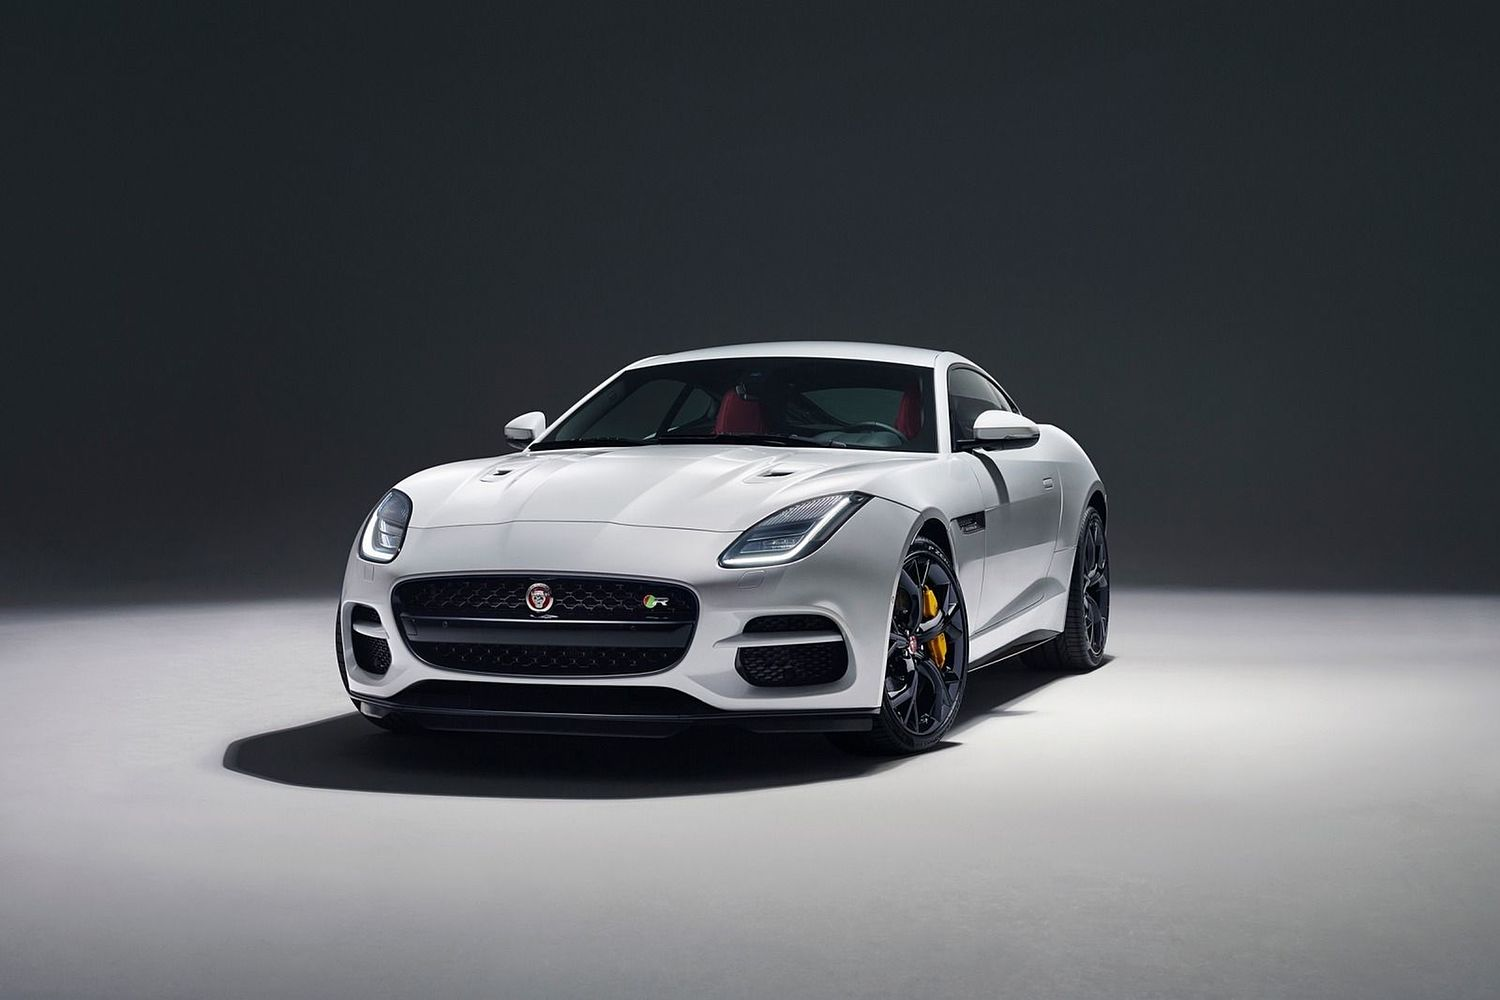 2018 Jaguar F-TYPE R Coupe Exterior Shown